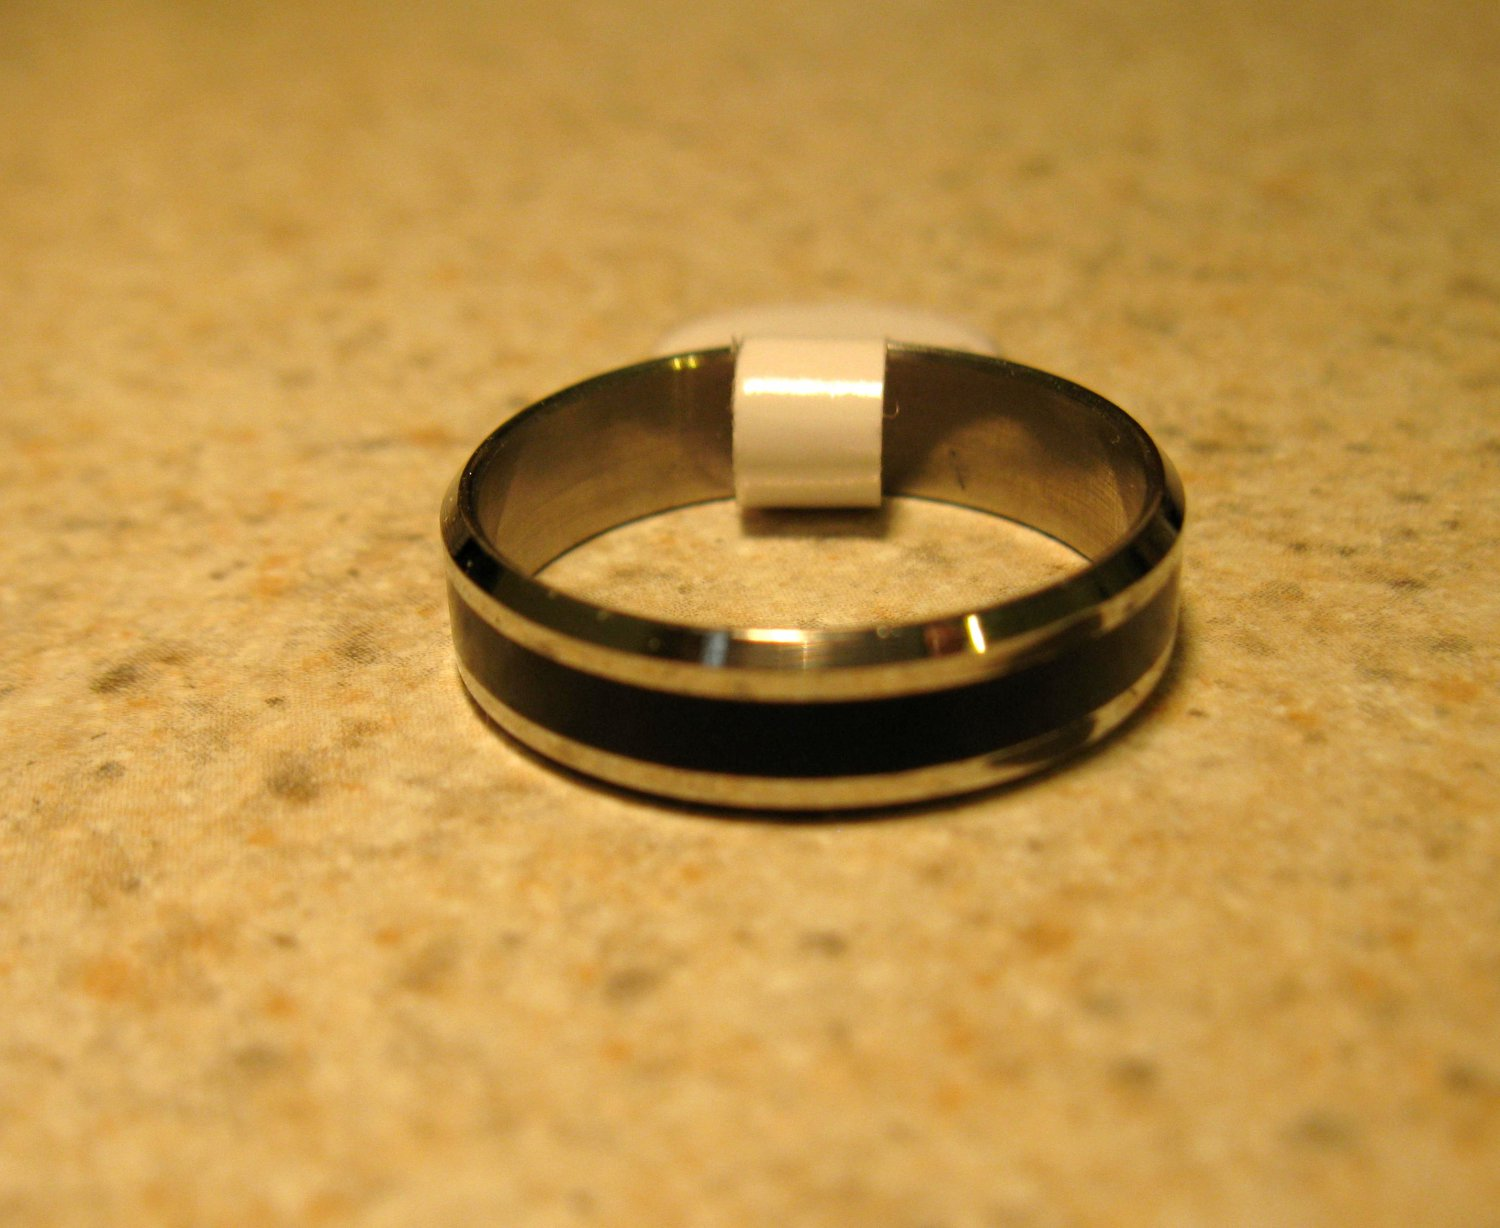 Silver with Black Wedding Band Rings Unisex Sizes 6 New #807